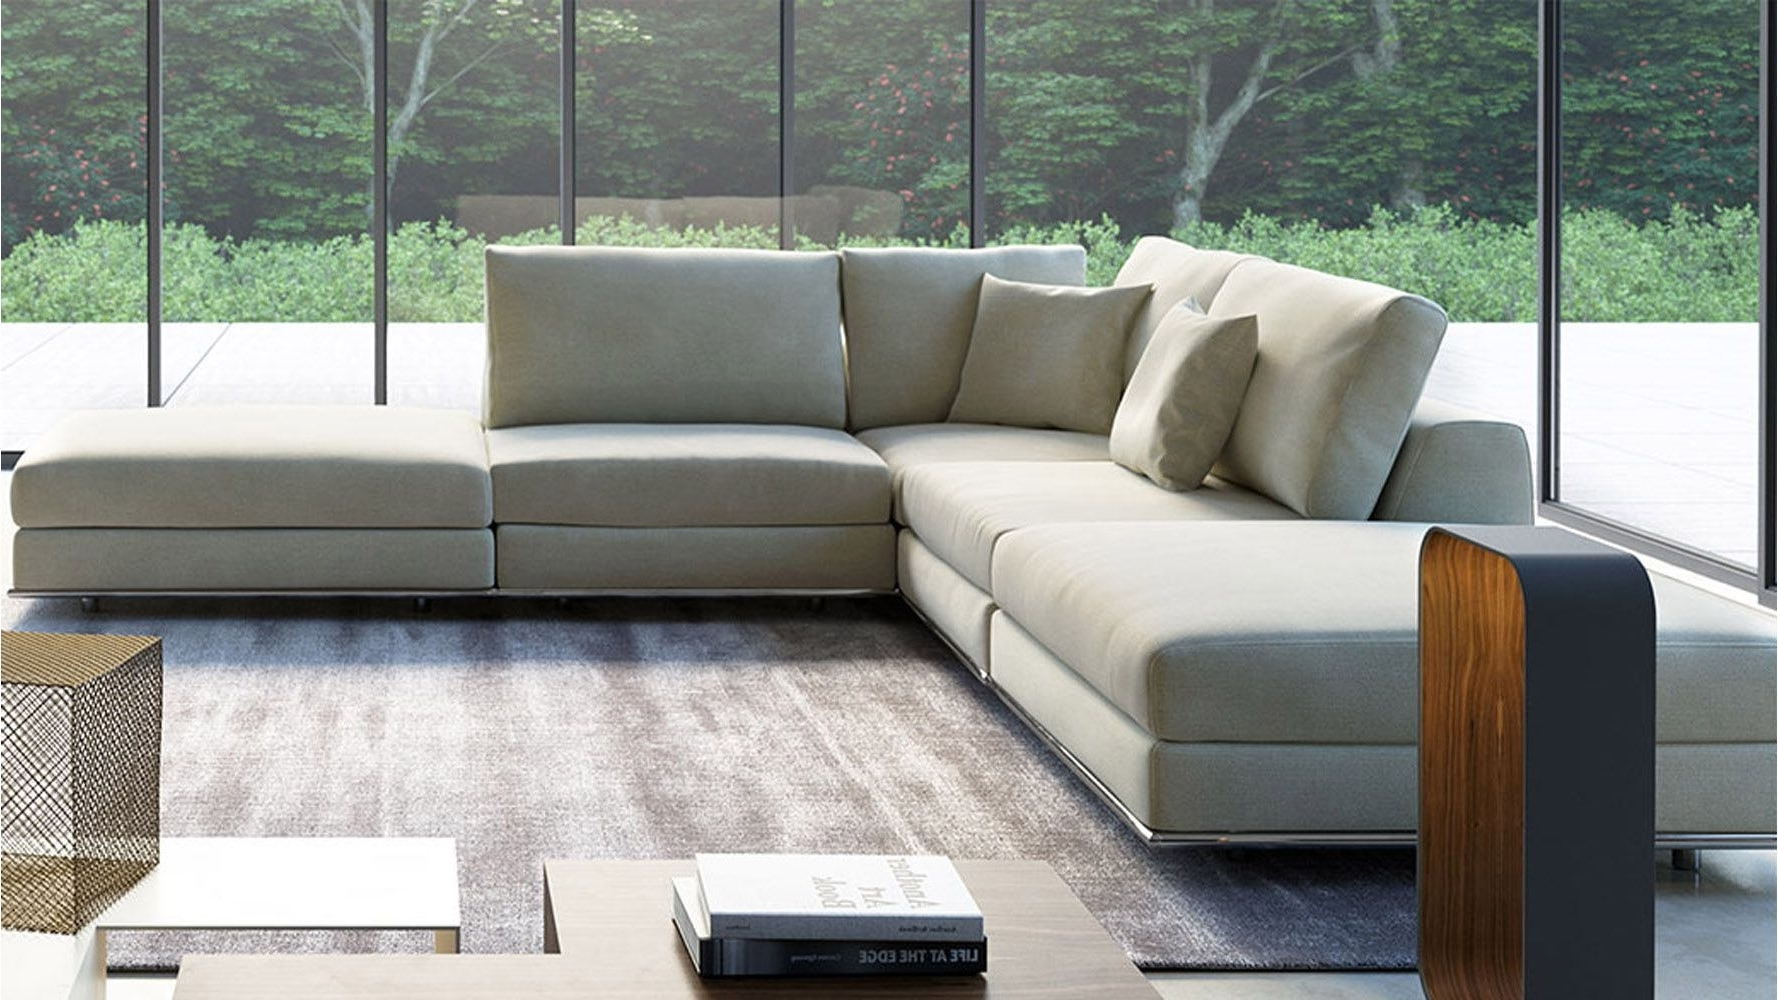 Trendy Armless Sectional Sofas With Cool Armless Sectional Sofa , Unique Armless Sectional Sofa 22 On (View 13 of 15)